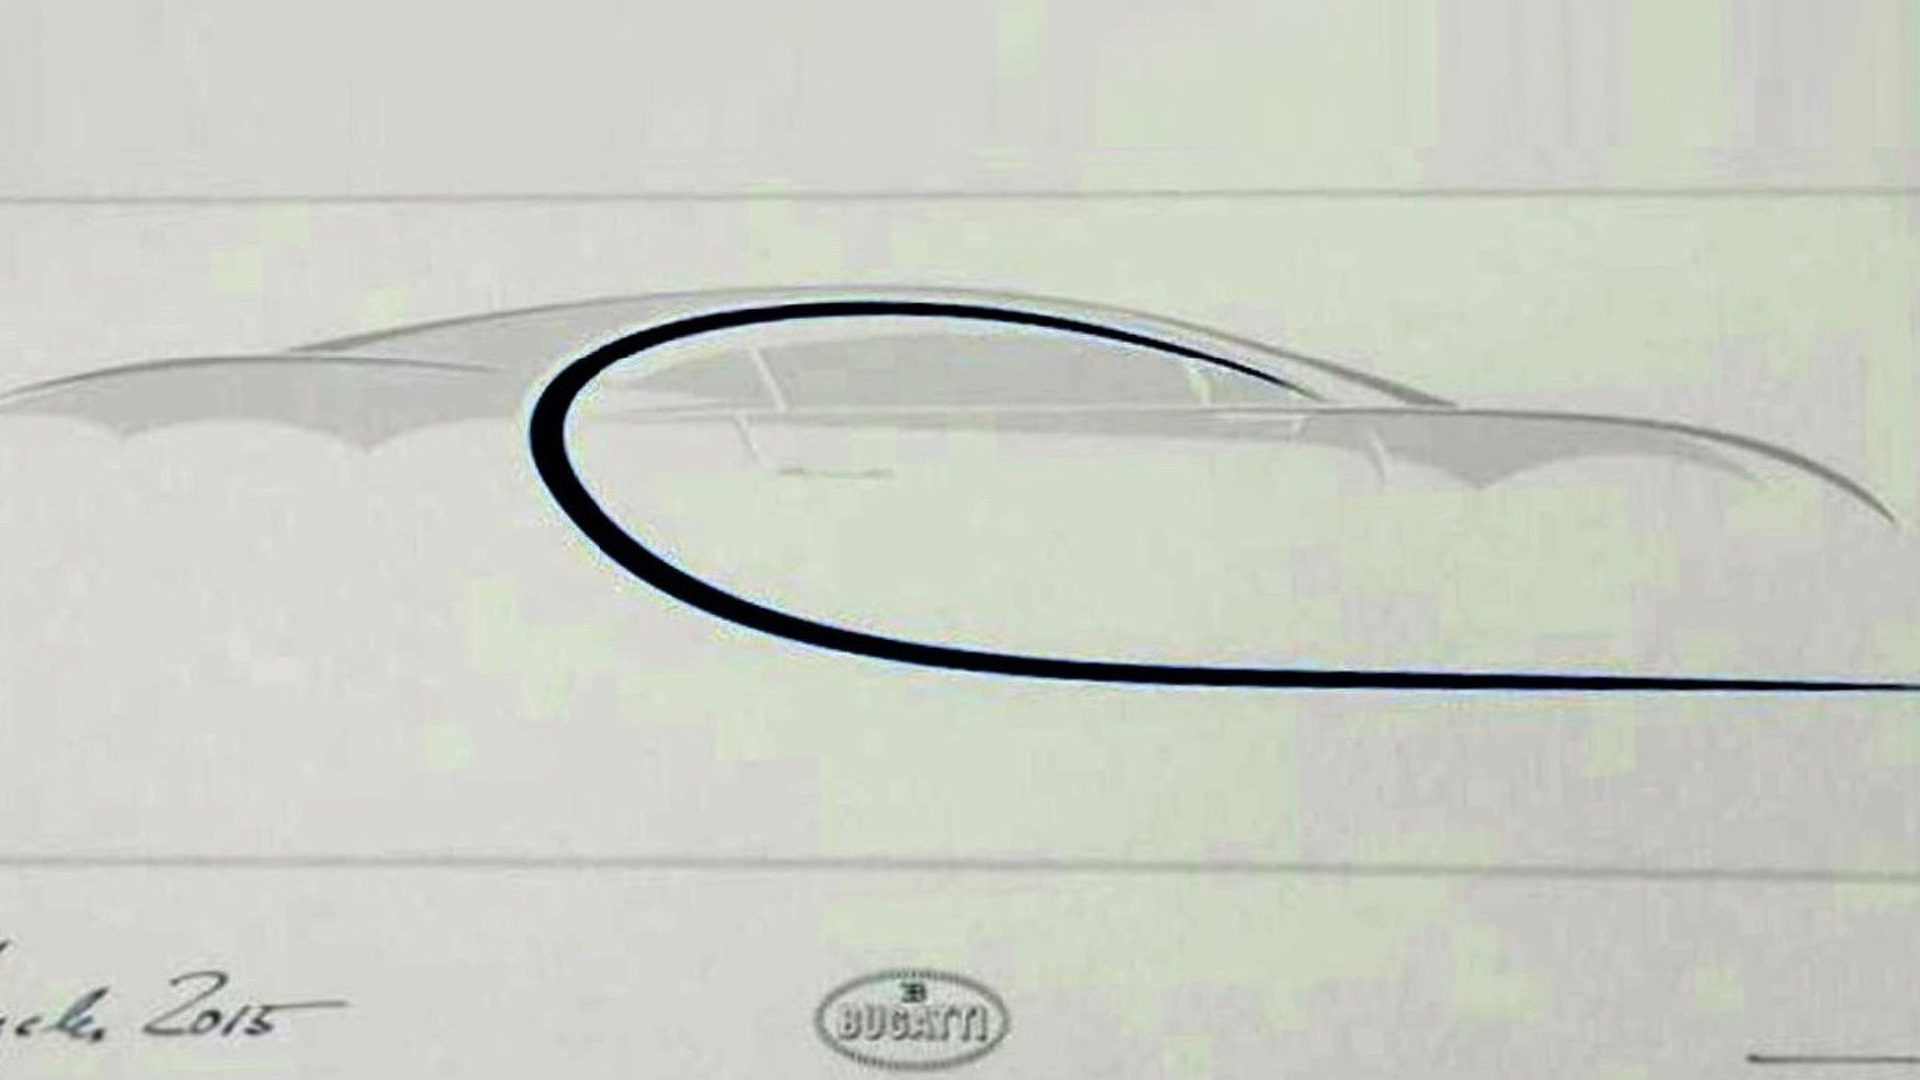 Bugatti Chiron allegedly teased to prospective buyers